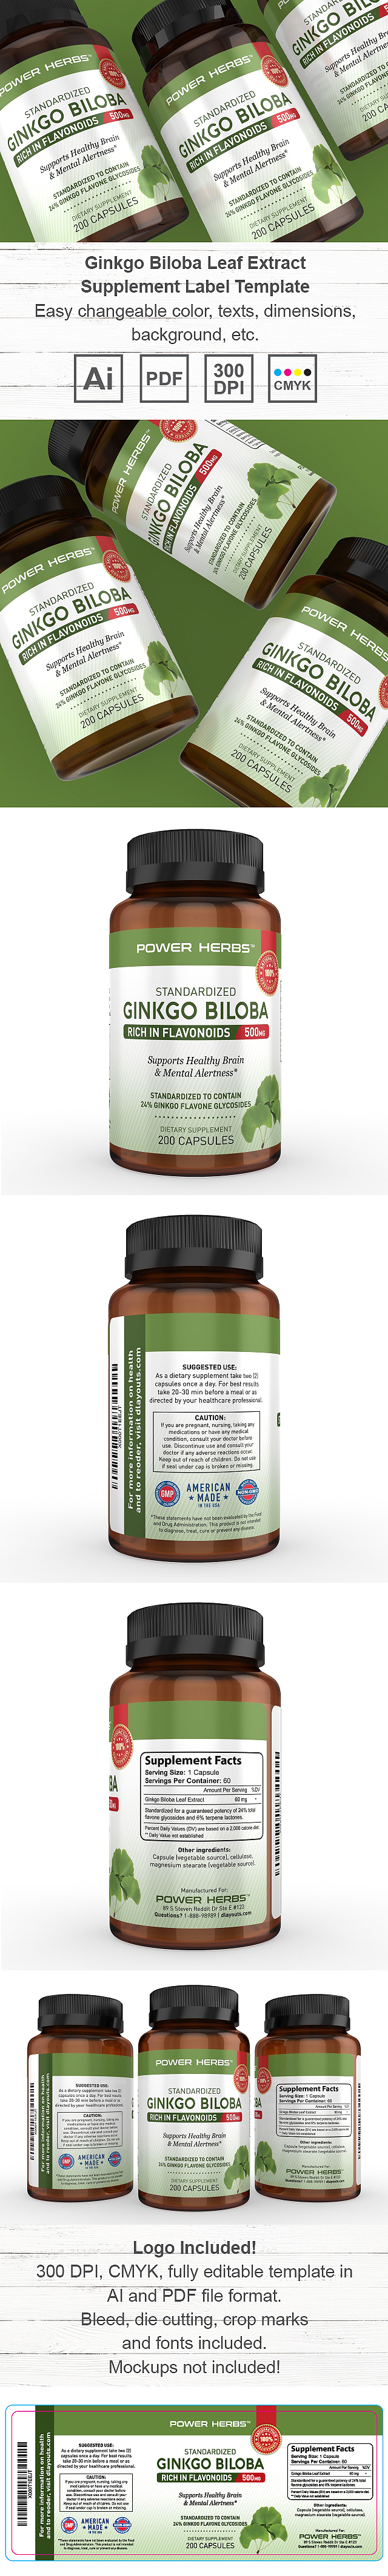 Ginkgo Biloba Leaf Extract Supplement Label Template